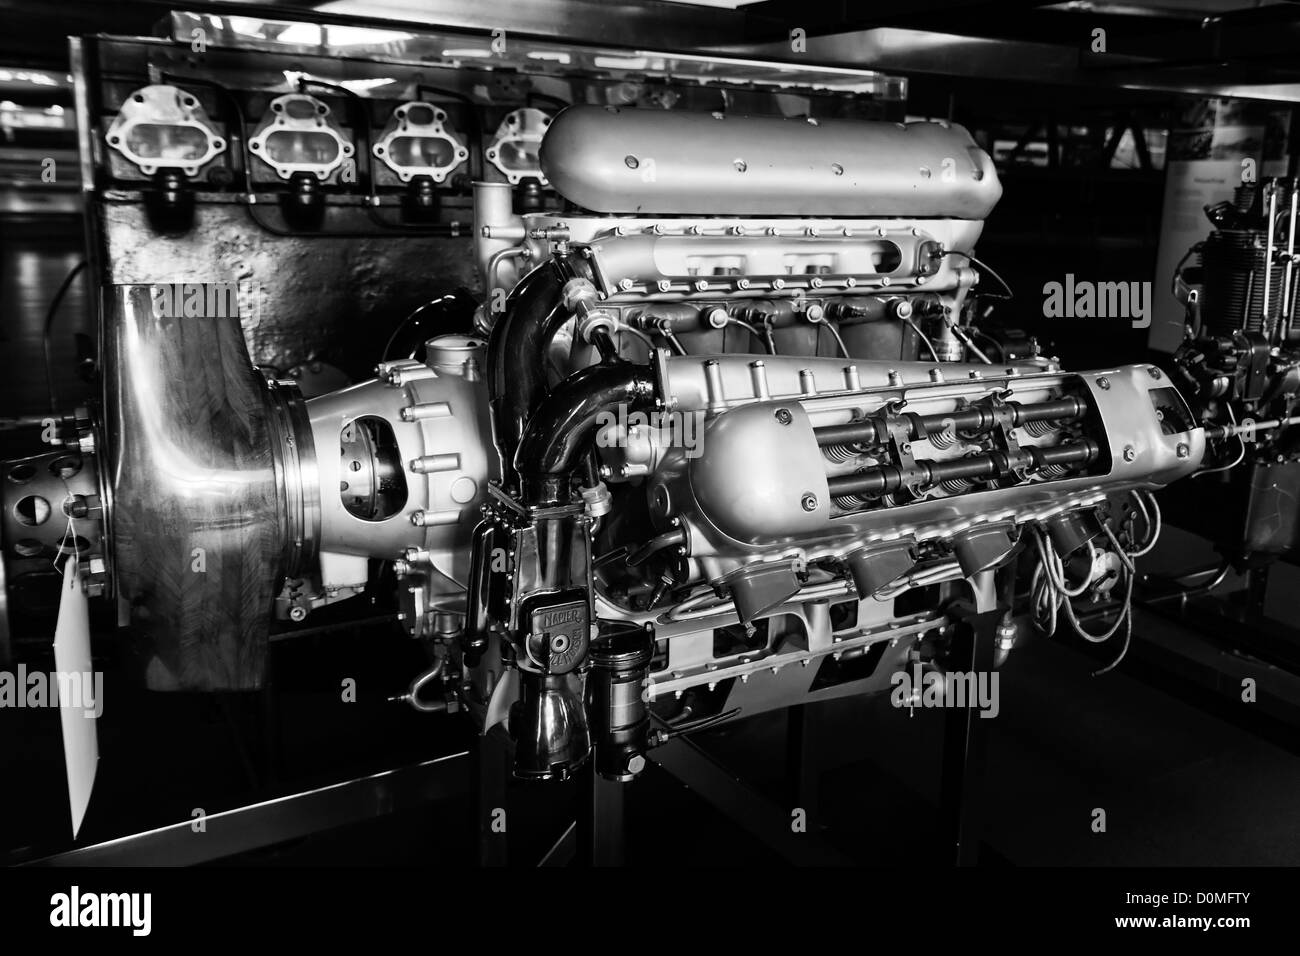 Large antique aircraft engine in a museum - Stock Image